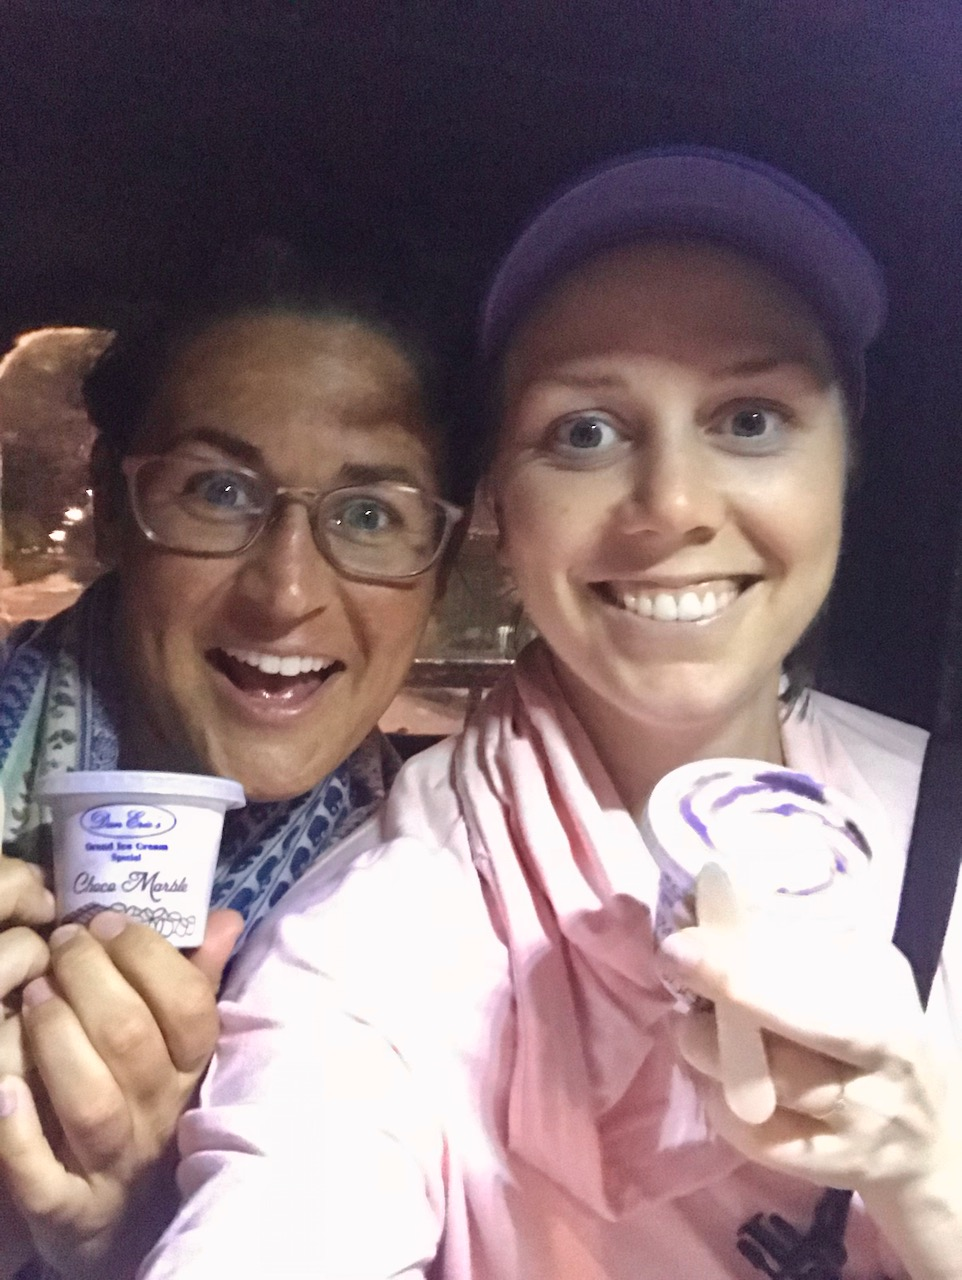 - We pulled over to a small shop ti pick up ice cream and definitely got luke warm cream. Ha! It's a good story though.